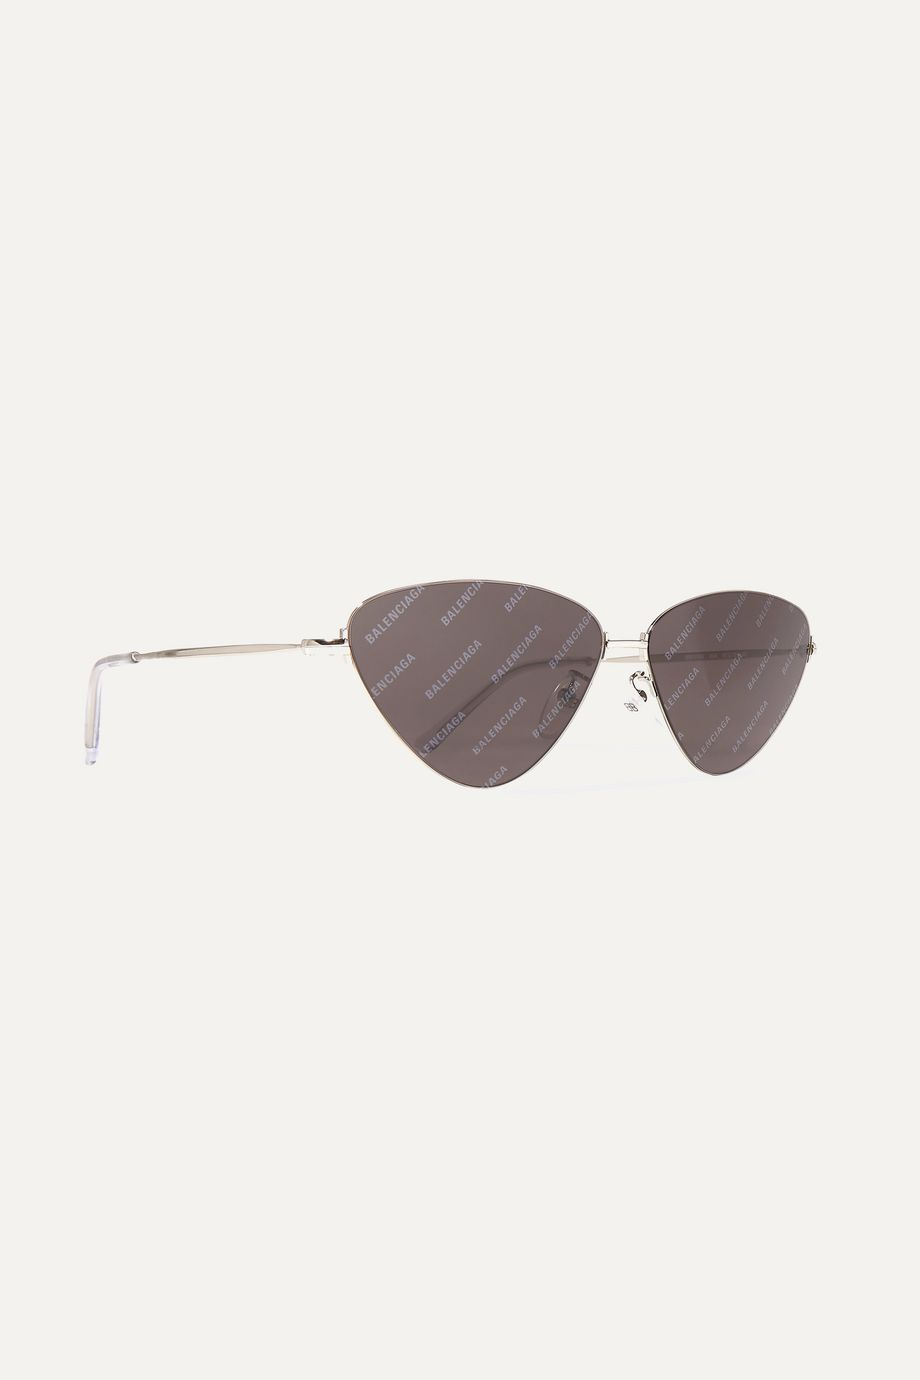 Balenciaga Invisible cat-eye silver-tone sunglasses